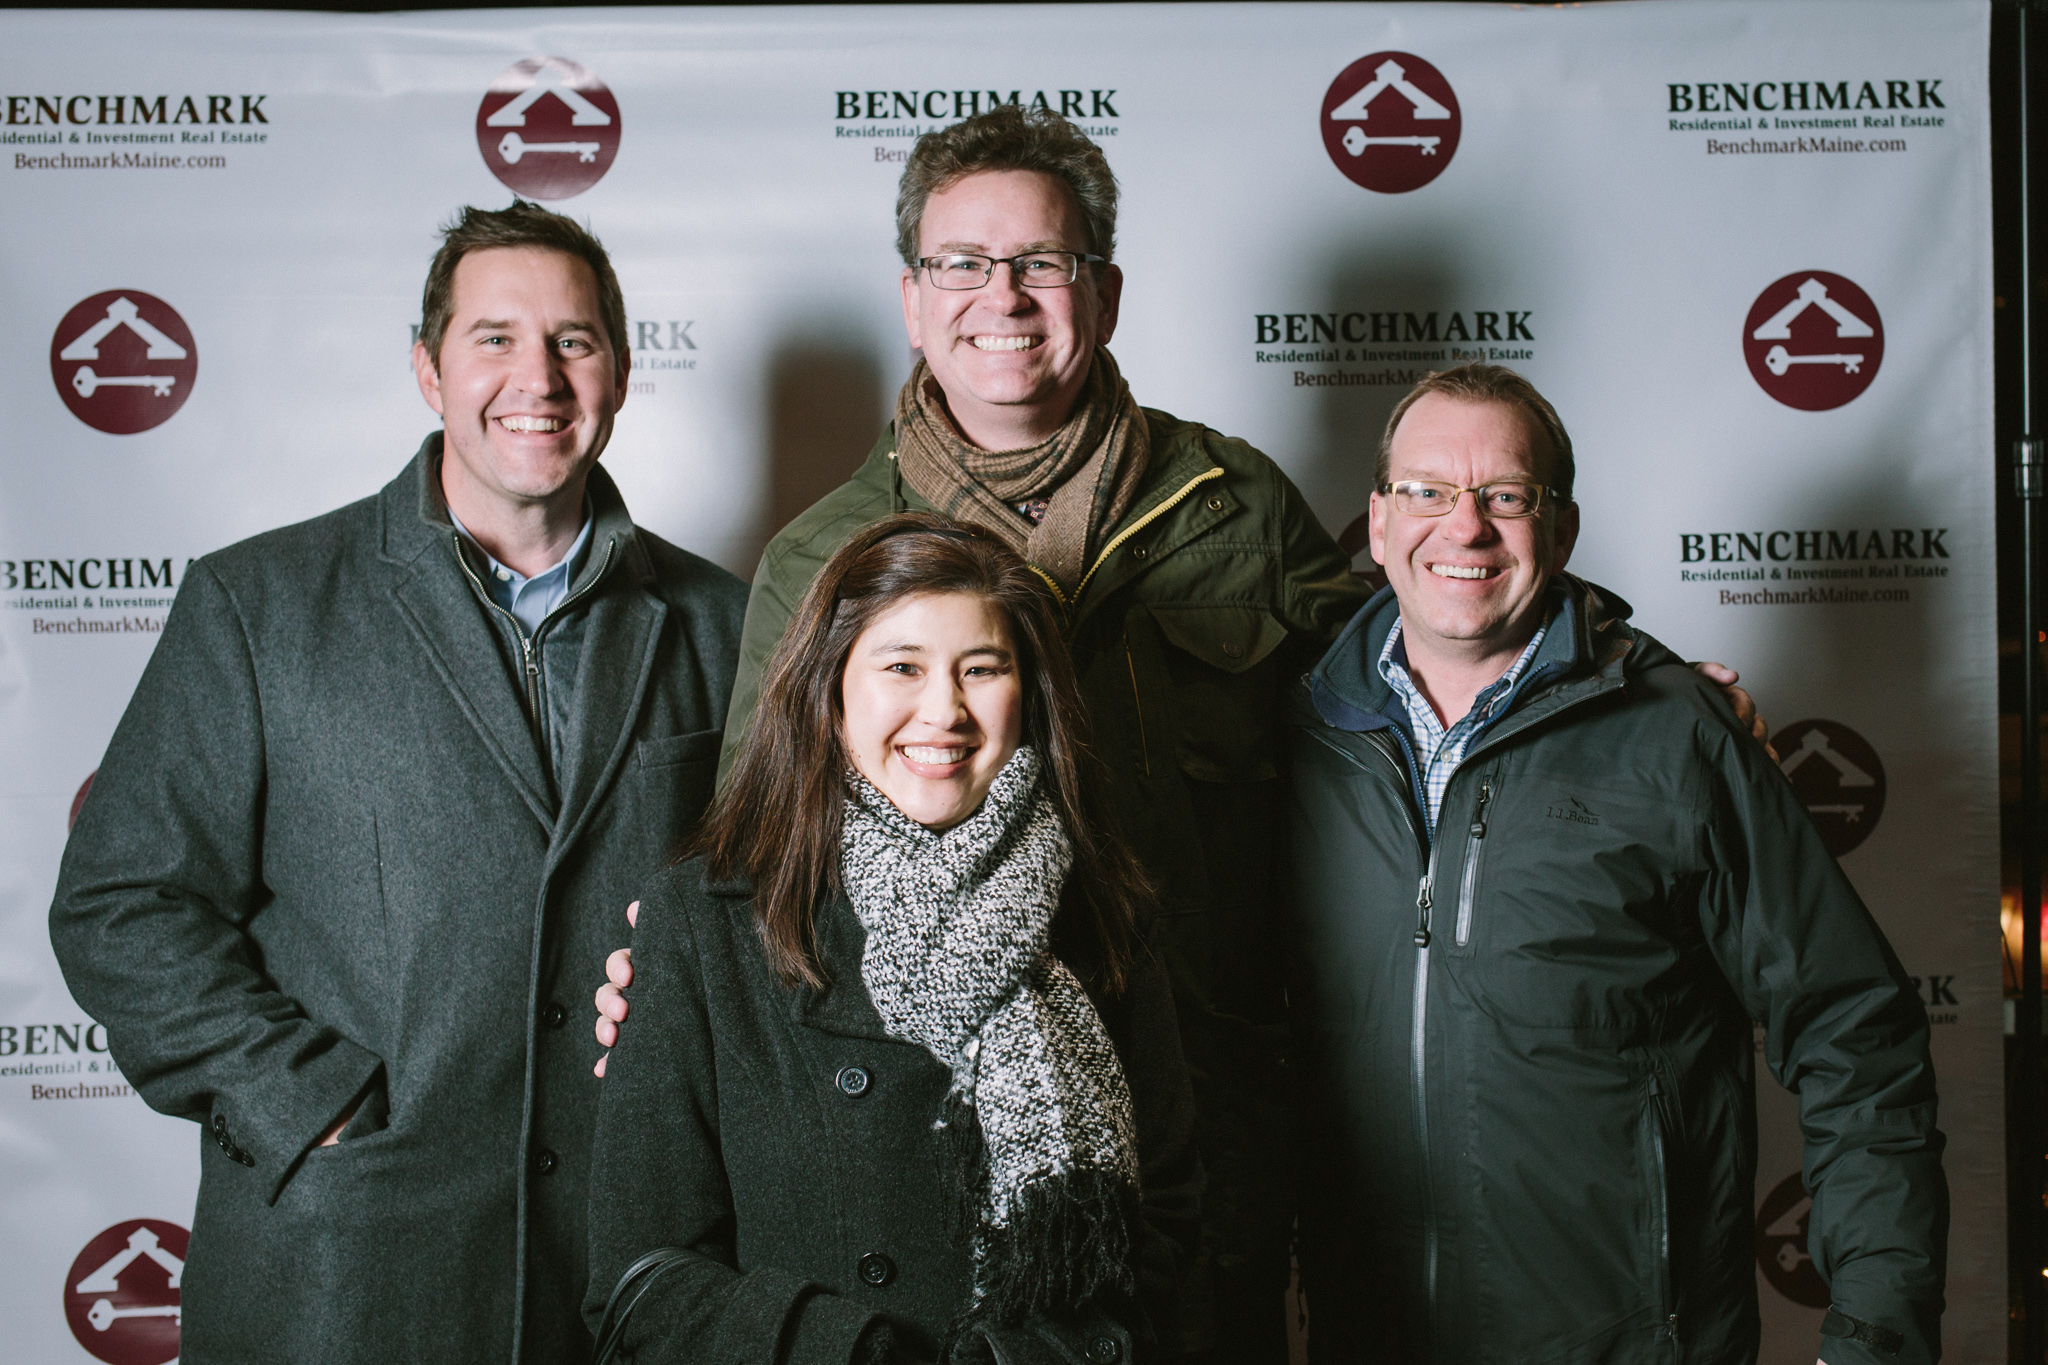 Benchmark_Holiday_Party_SR-001.jpg